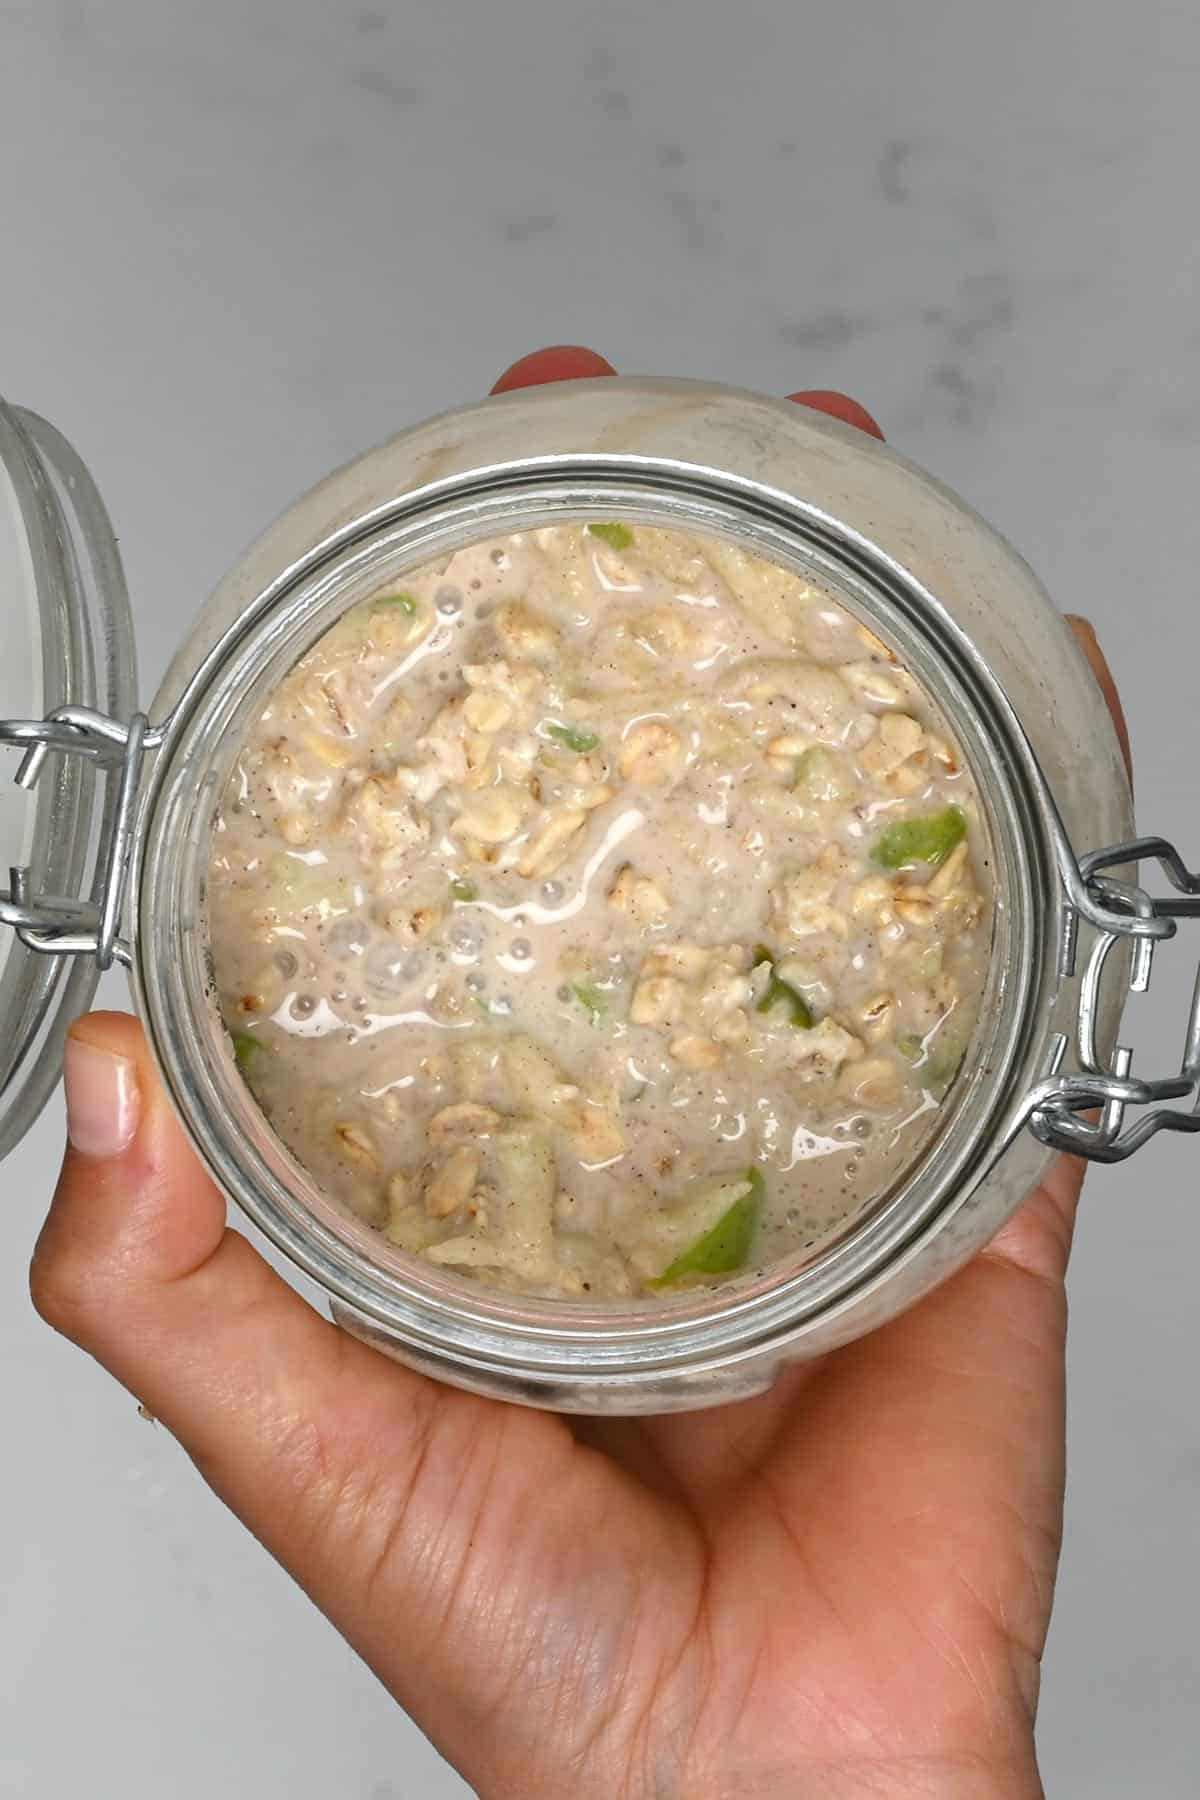 Mixed overnight oats in a jar